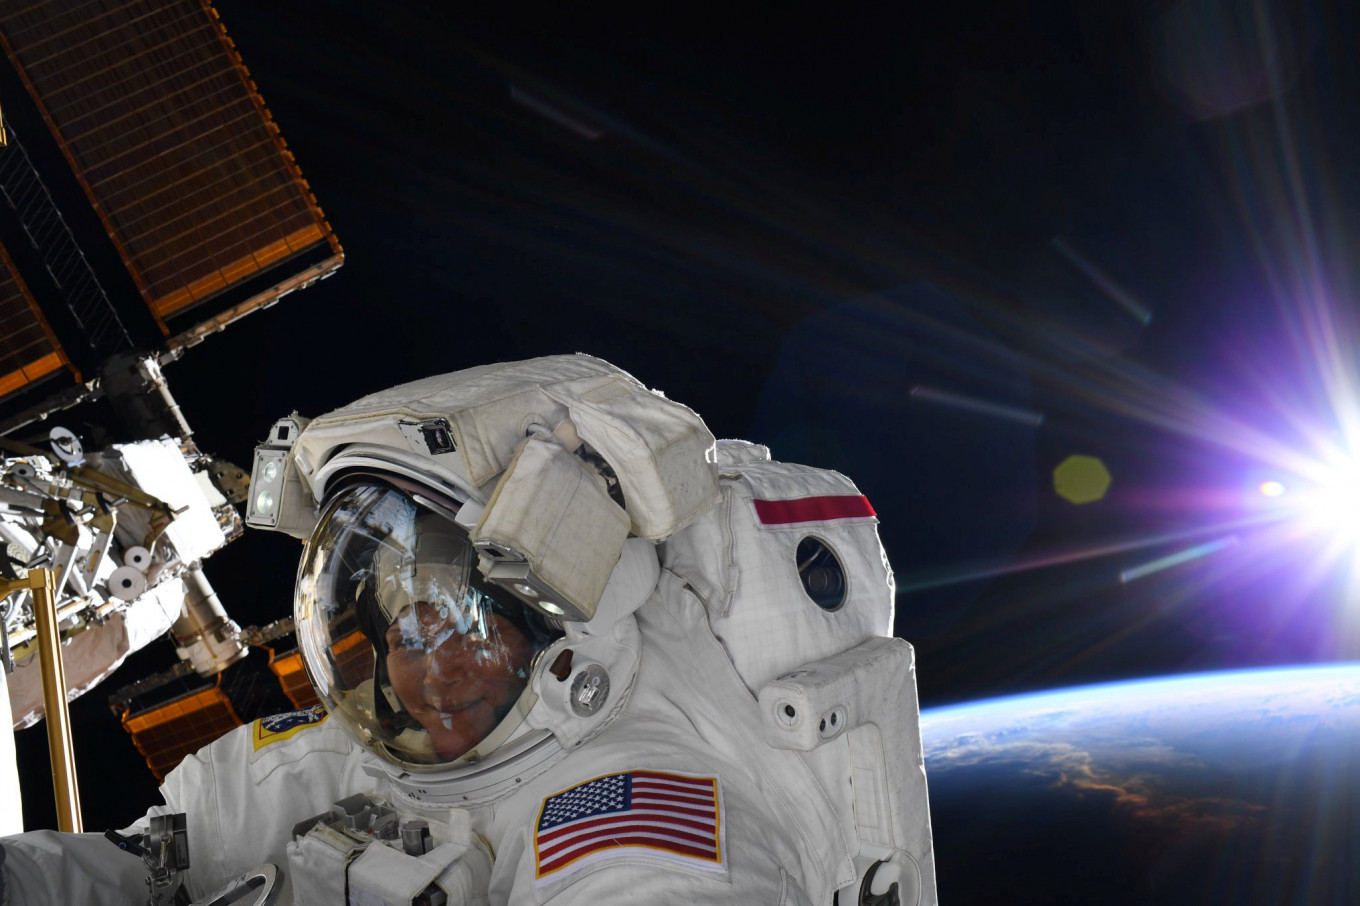 NASA cancels first all-women spacewalk due to lack of small spacesuits